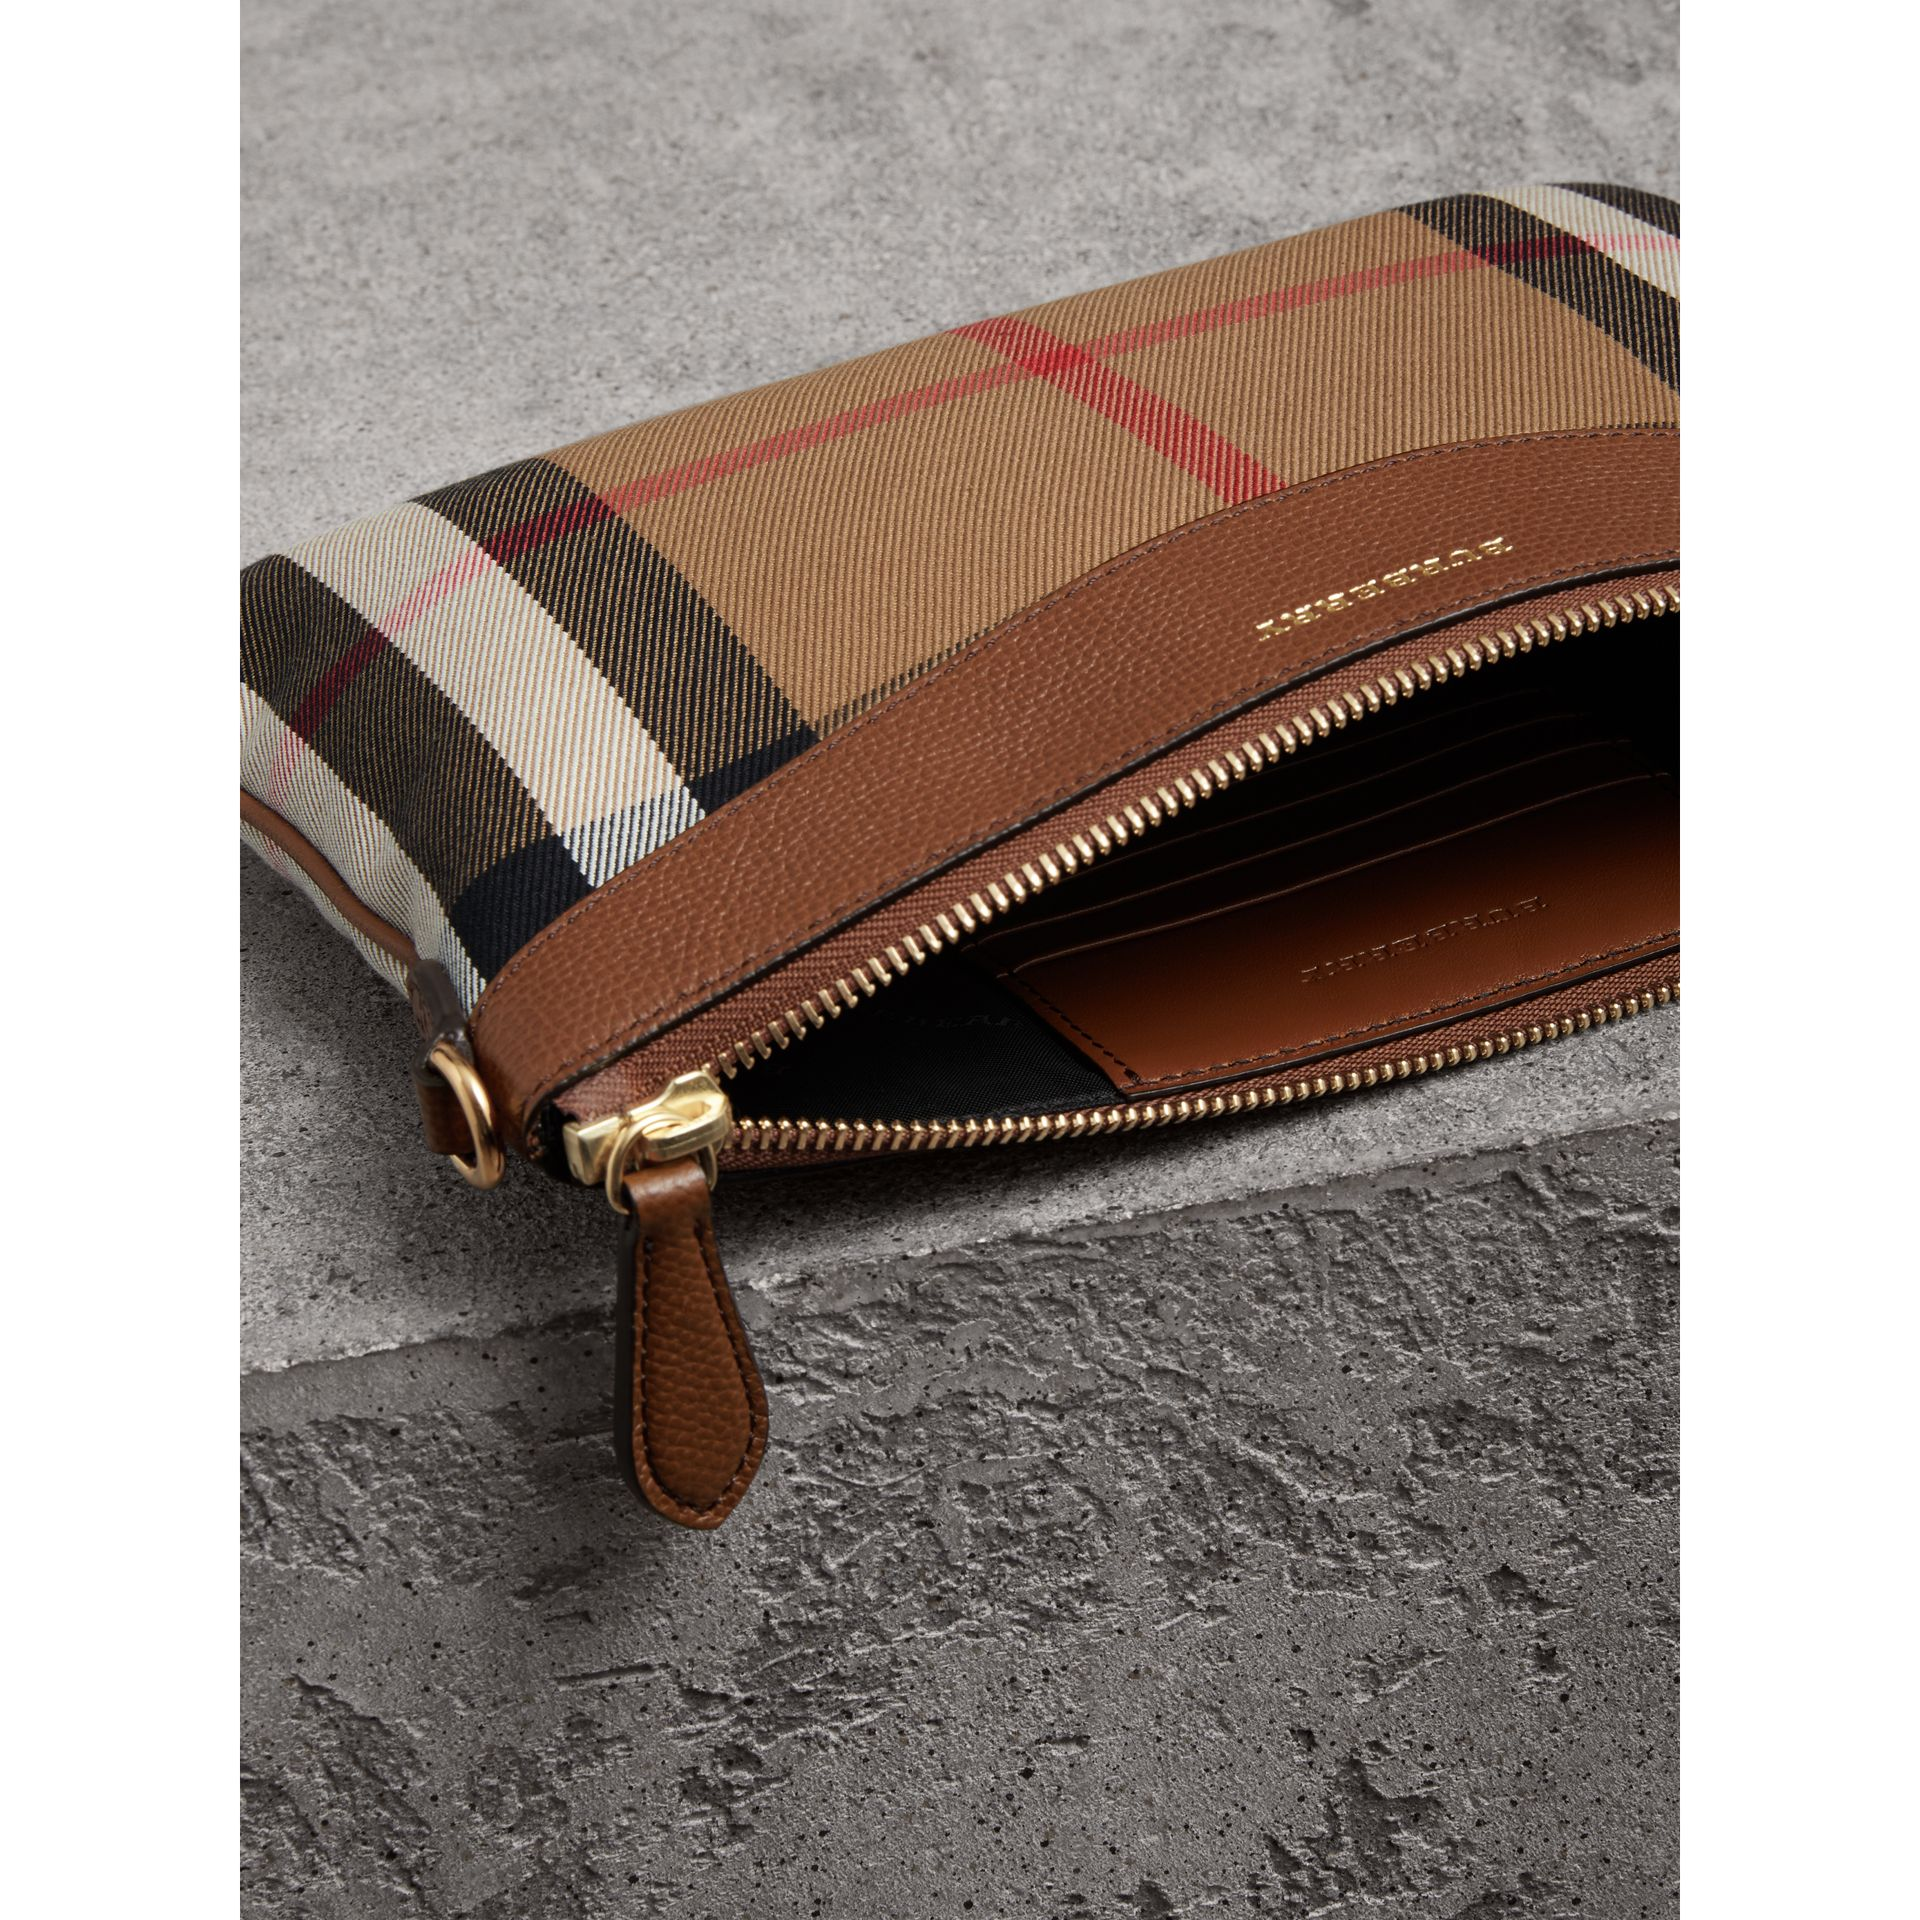 House Check and Leather Clutch Bag in Tan - Women | Burberry - gallery image 4